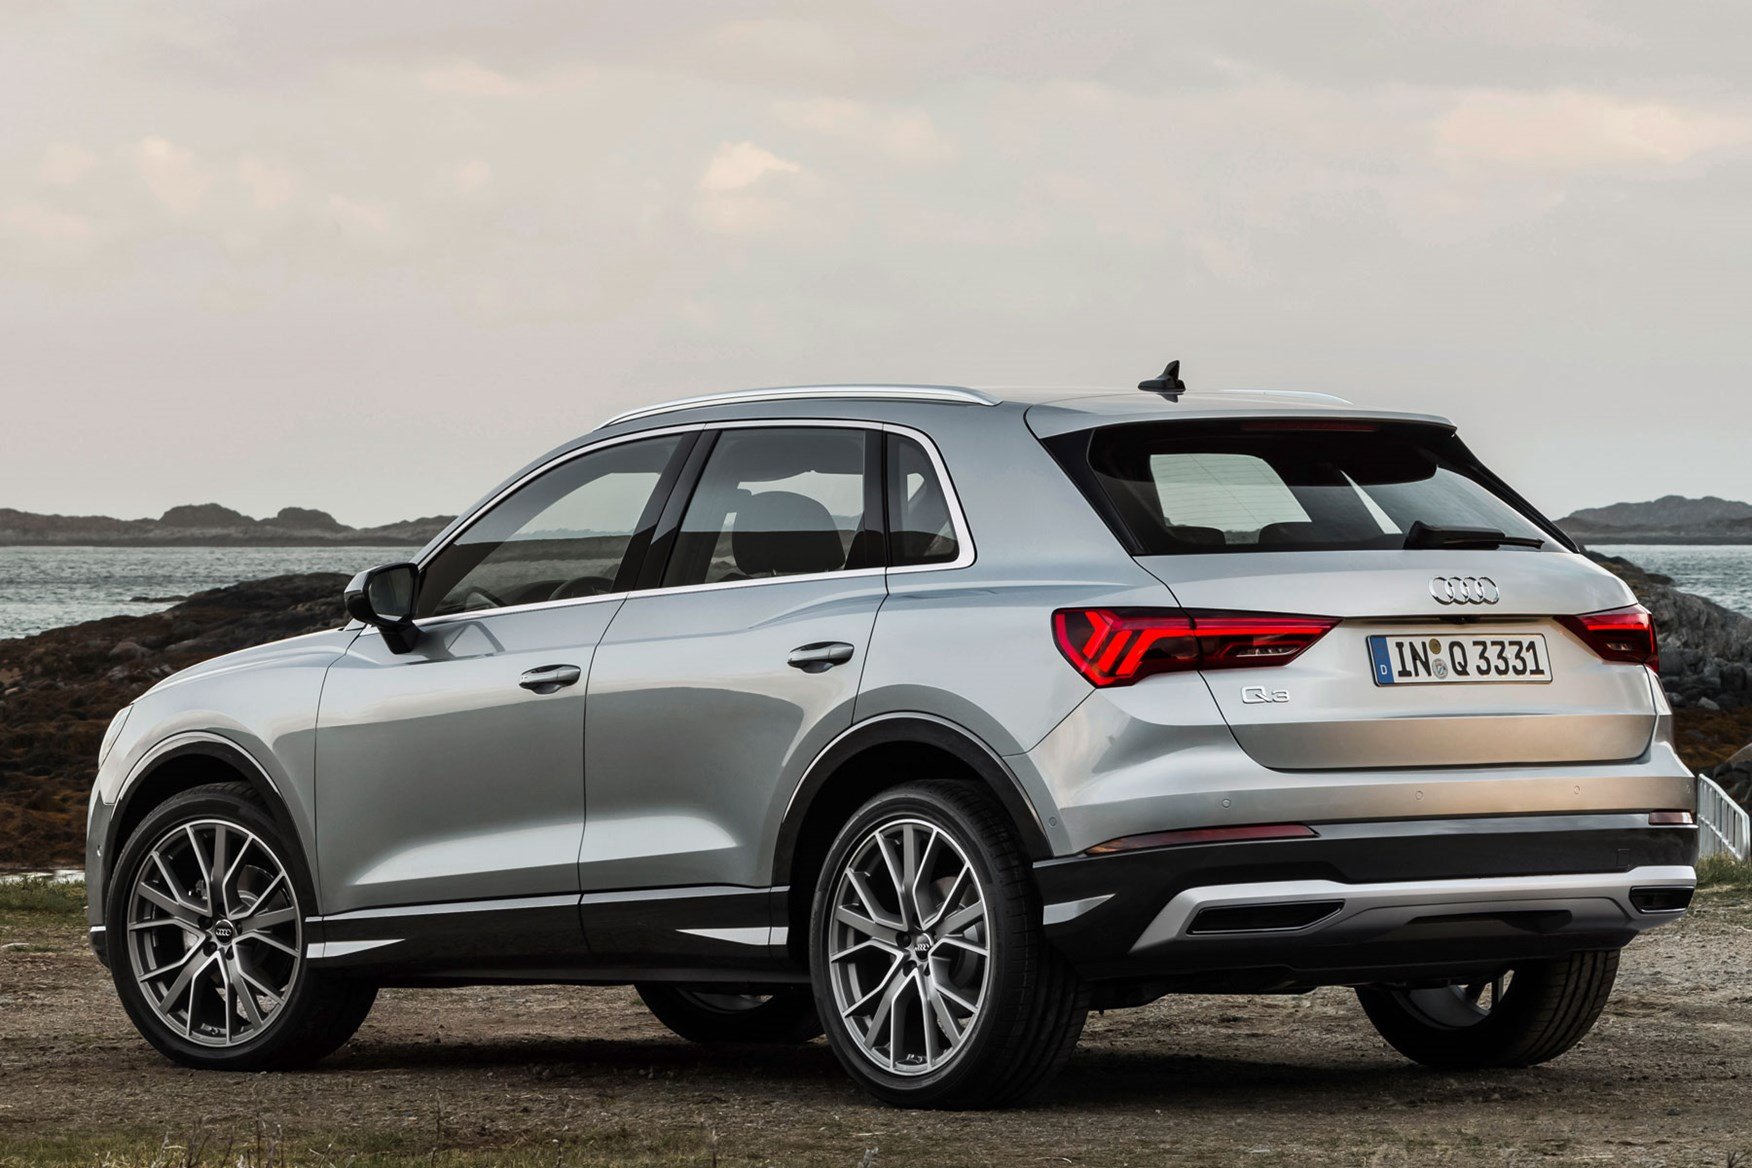 Audi Q3 is longer, wider and shorter than Mk1 Q3